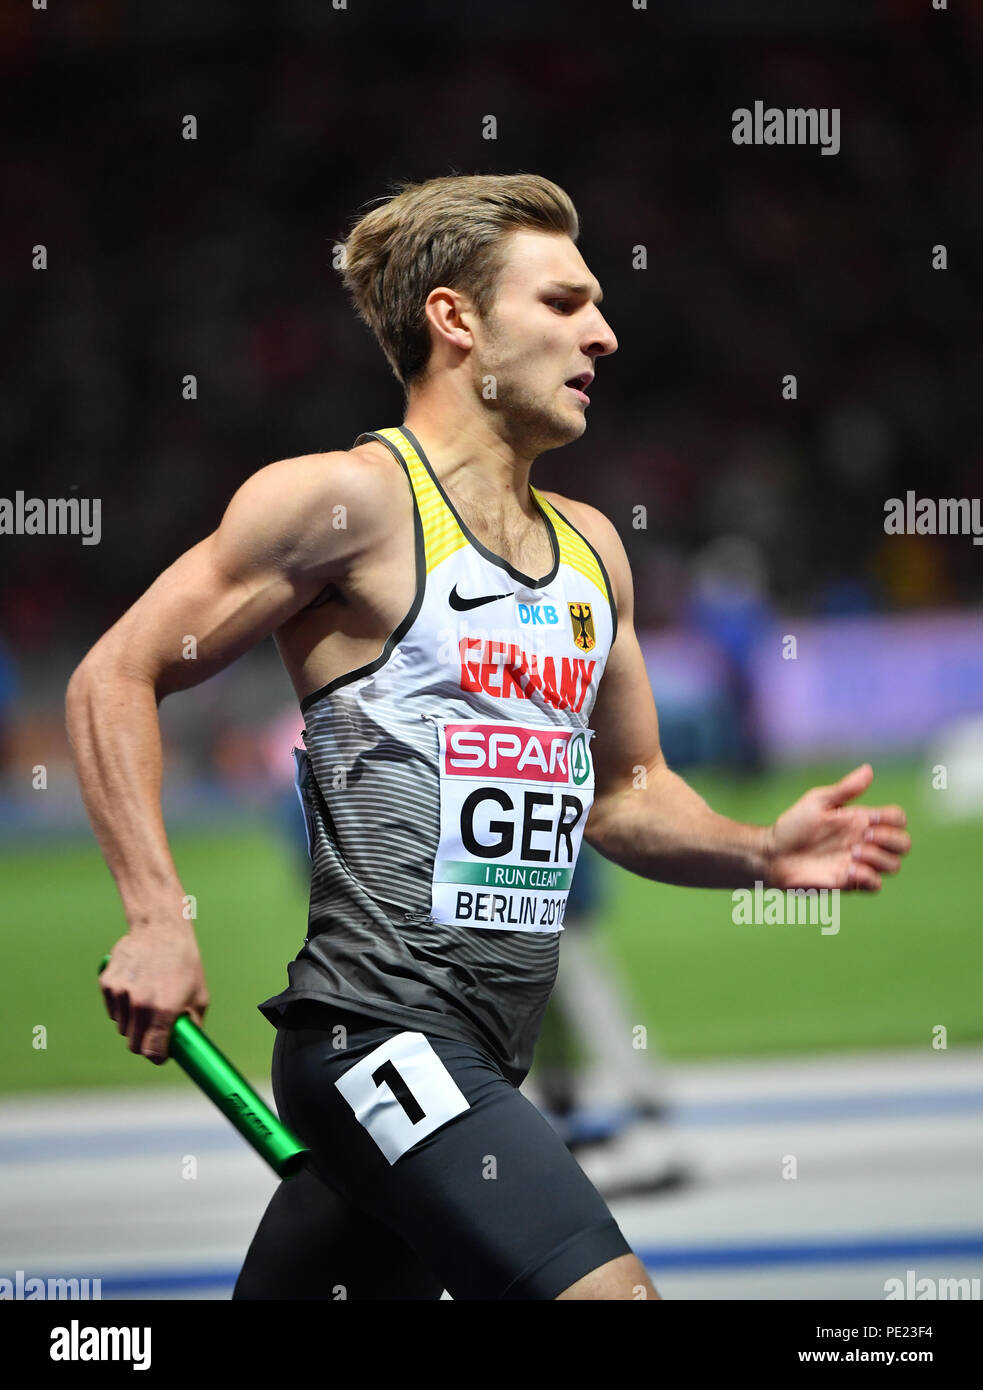 Berlin, Germany. 11th Aug, 2018. European Athletics Championships in the Olympic Stadium: 4x400 m Relay, Men, Final: Fabian Dammer from Germany in action. Credit: Bernd Thissen/dpa/Alamy Live News - Stock Image